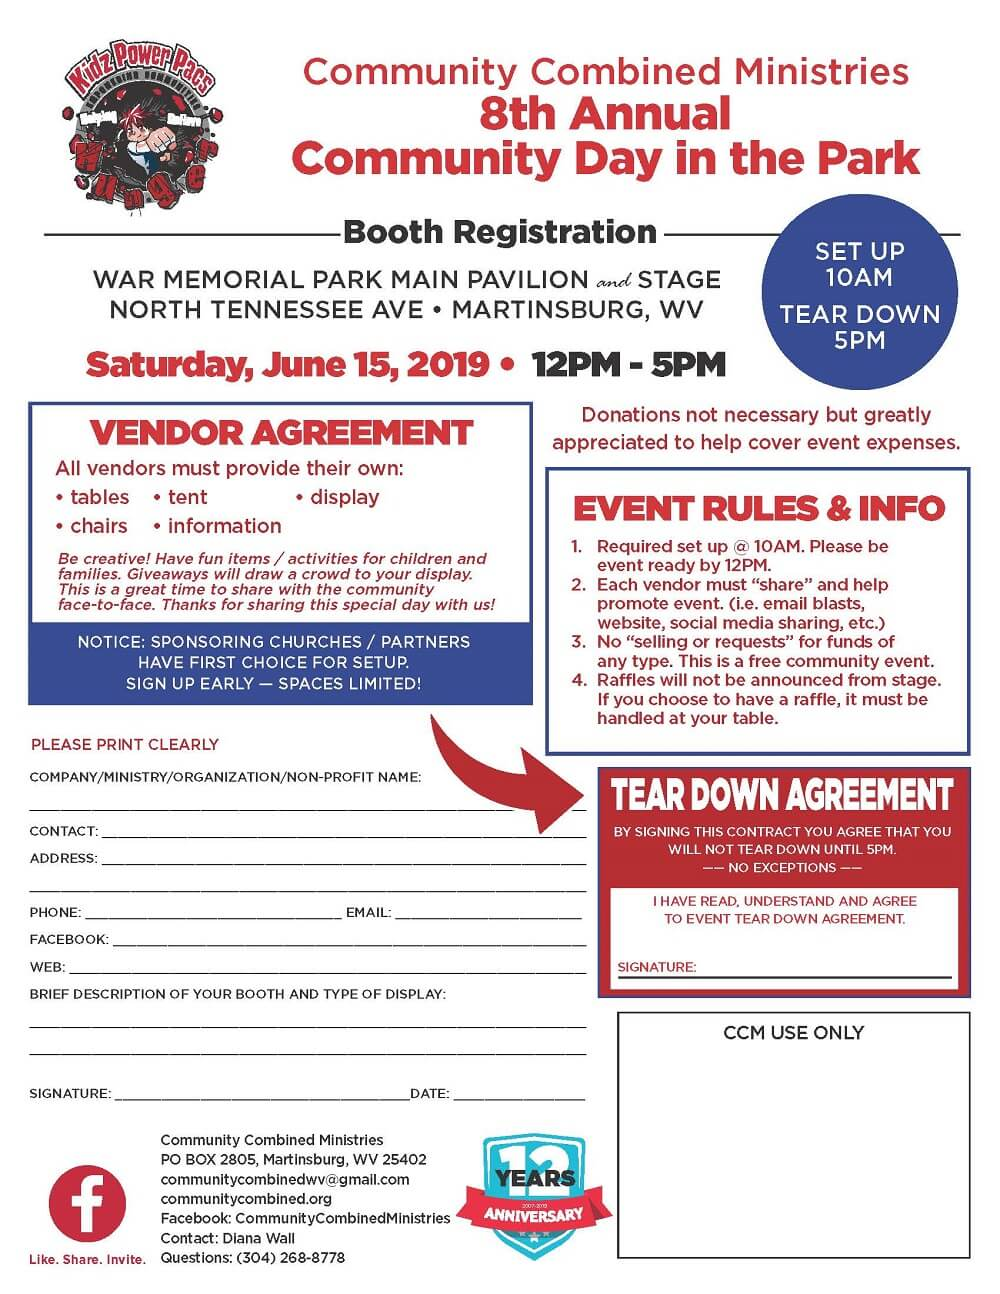 Booth registration for community combined ministries 8th annual day in the park at war memorial main pavilion june 15 2019